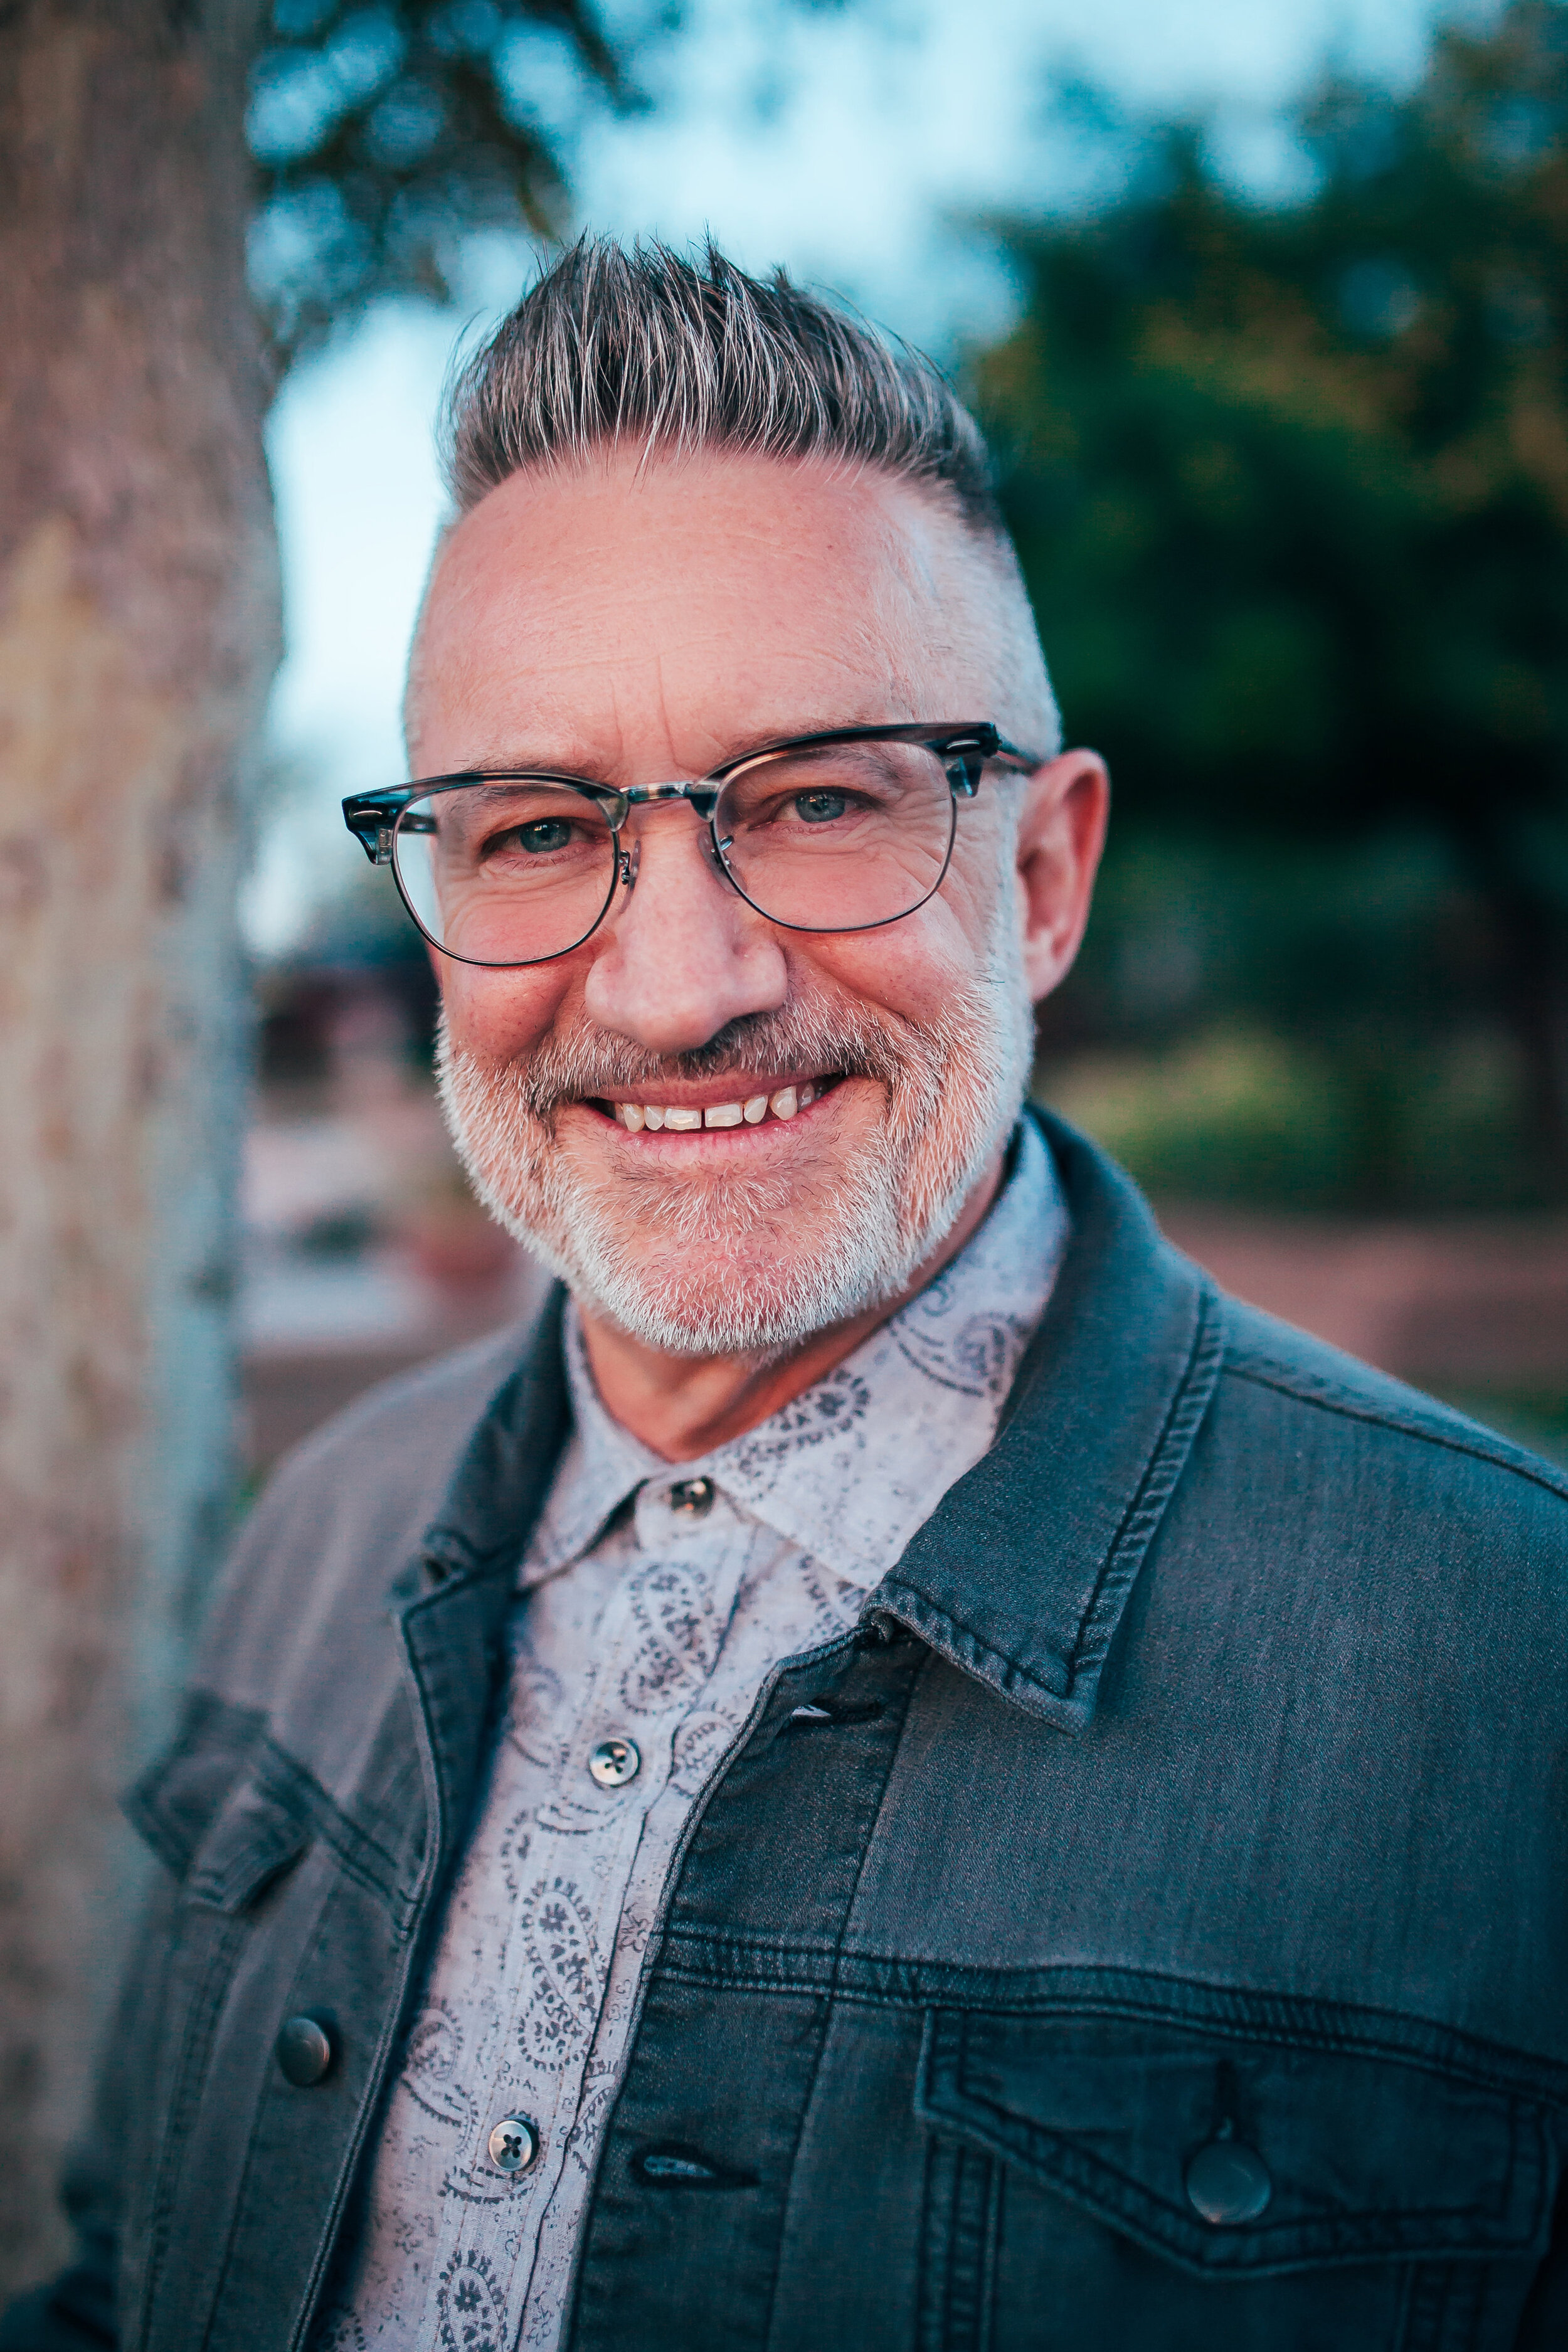 Ps. Paul Owens - We are excited to welcome Paul Owens - senior pastor of Fresh Start Church in Peoria (AZ), a multi-racial, multi-cultural church, where the word of God is being proclaimed boldly and lives are being changed through the power of the Holy Spirit.